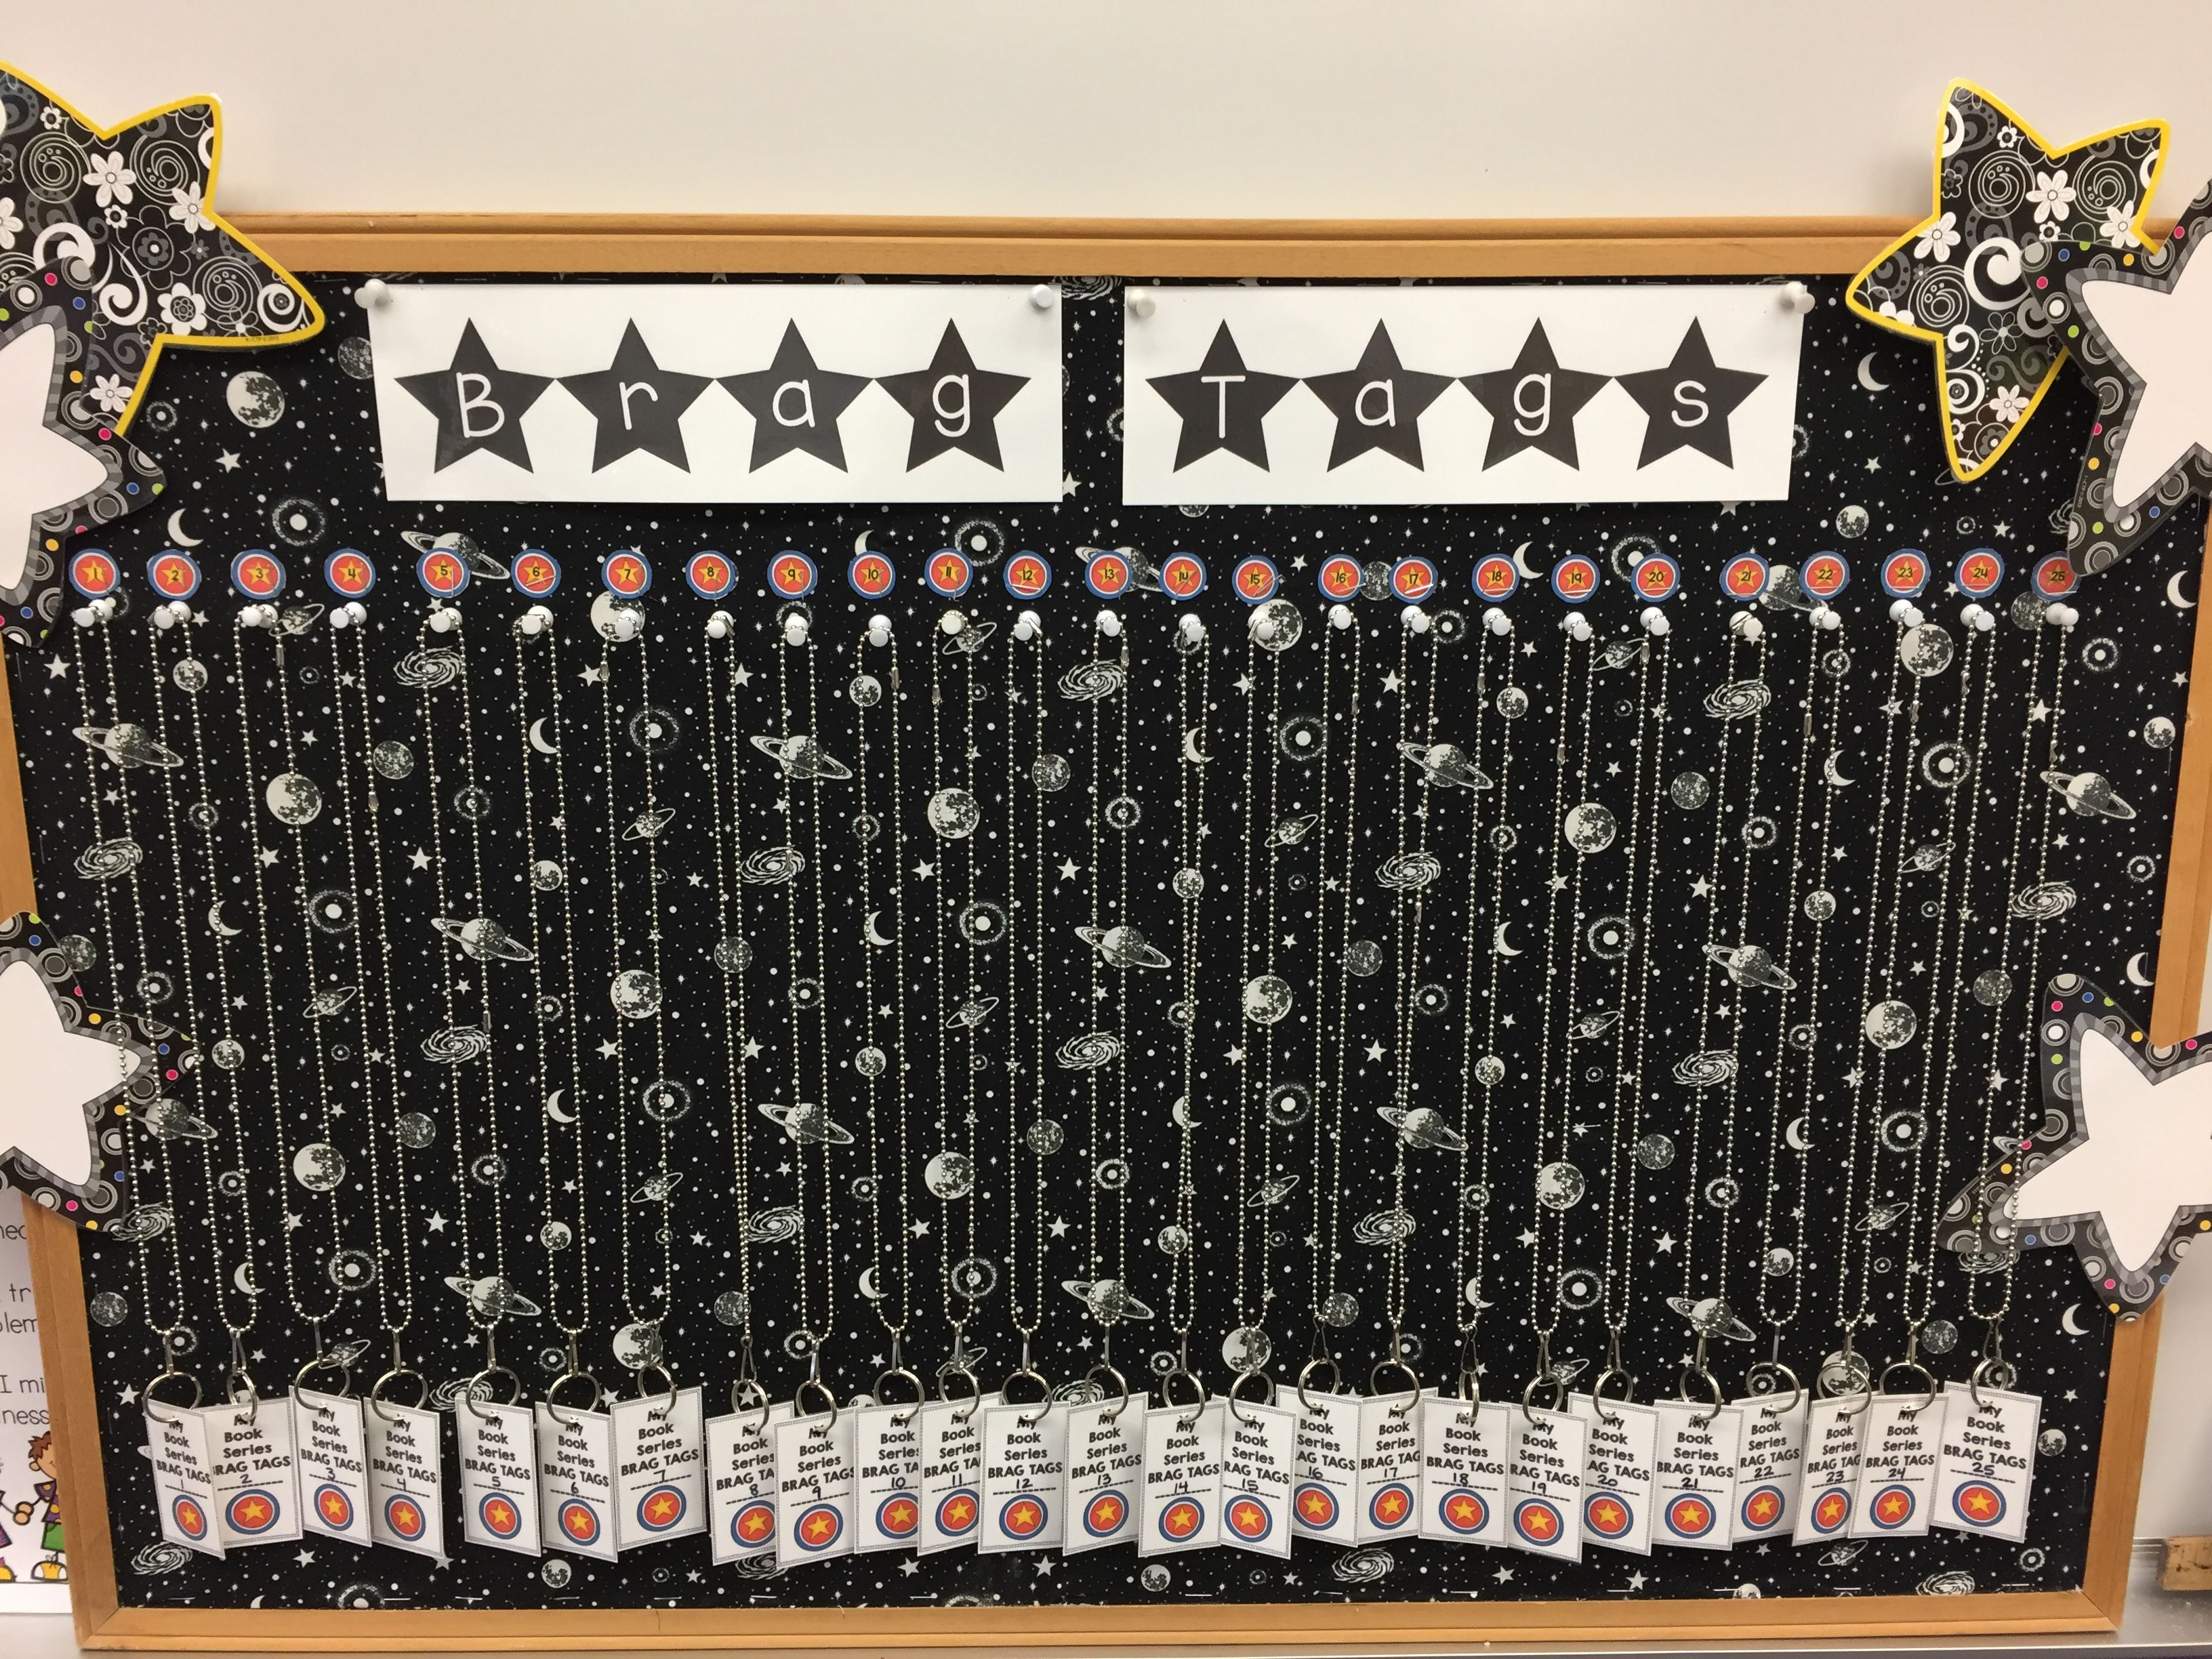 My brag tag board for author studies. Students earn brag tags for reading books in a series or by authors.